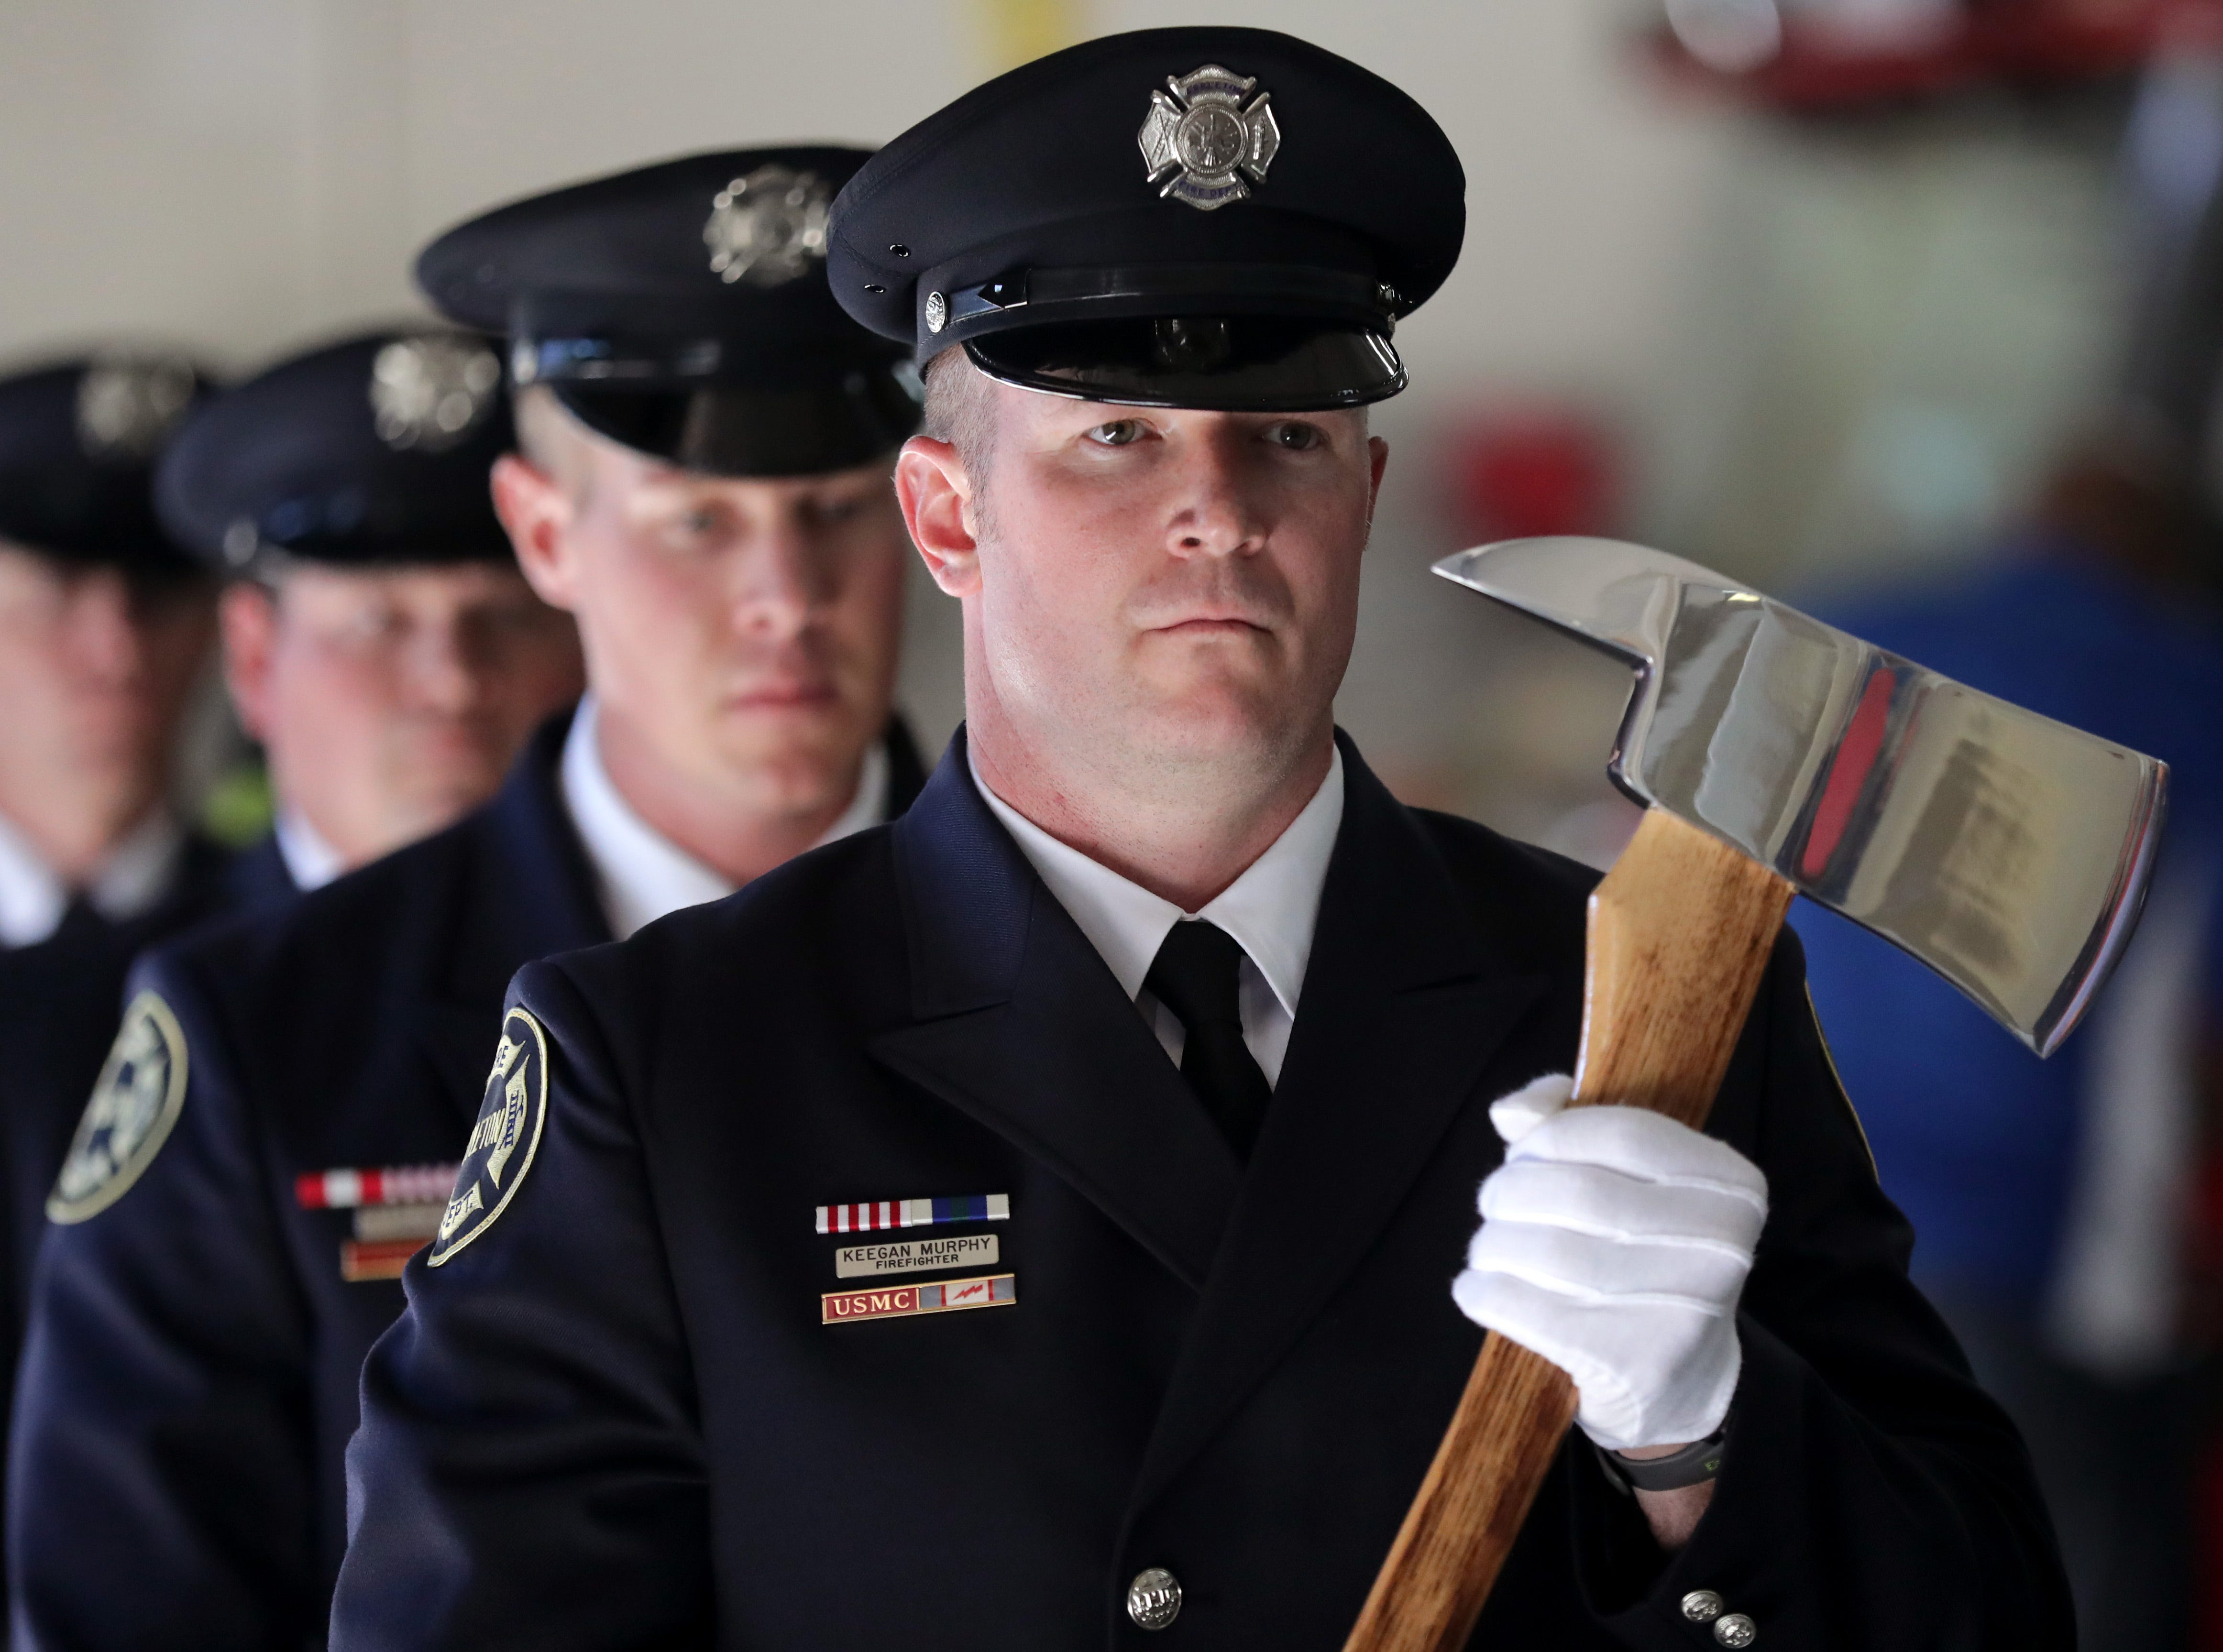 Firefighter Keegan Murphy walks with the Color Guard during a ceremony to  swear in new Fire Chief Jeremy Hansen on Monday, July 16, 2018 at Fire Station 1 in Appleton, Wis. 